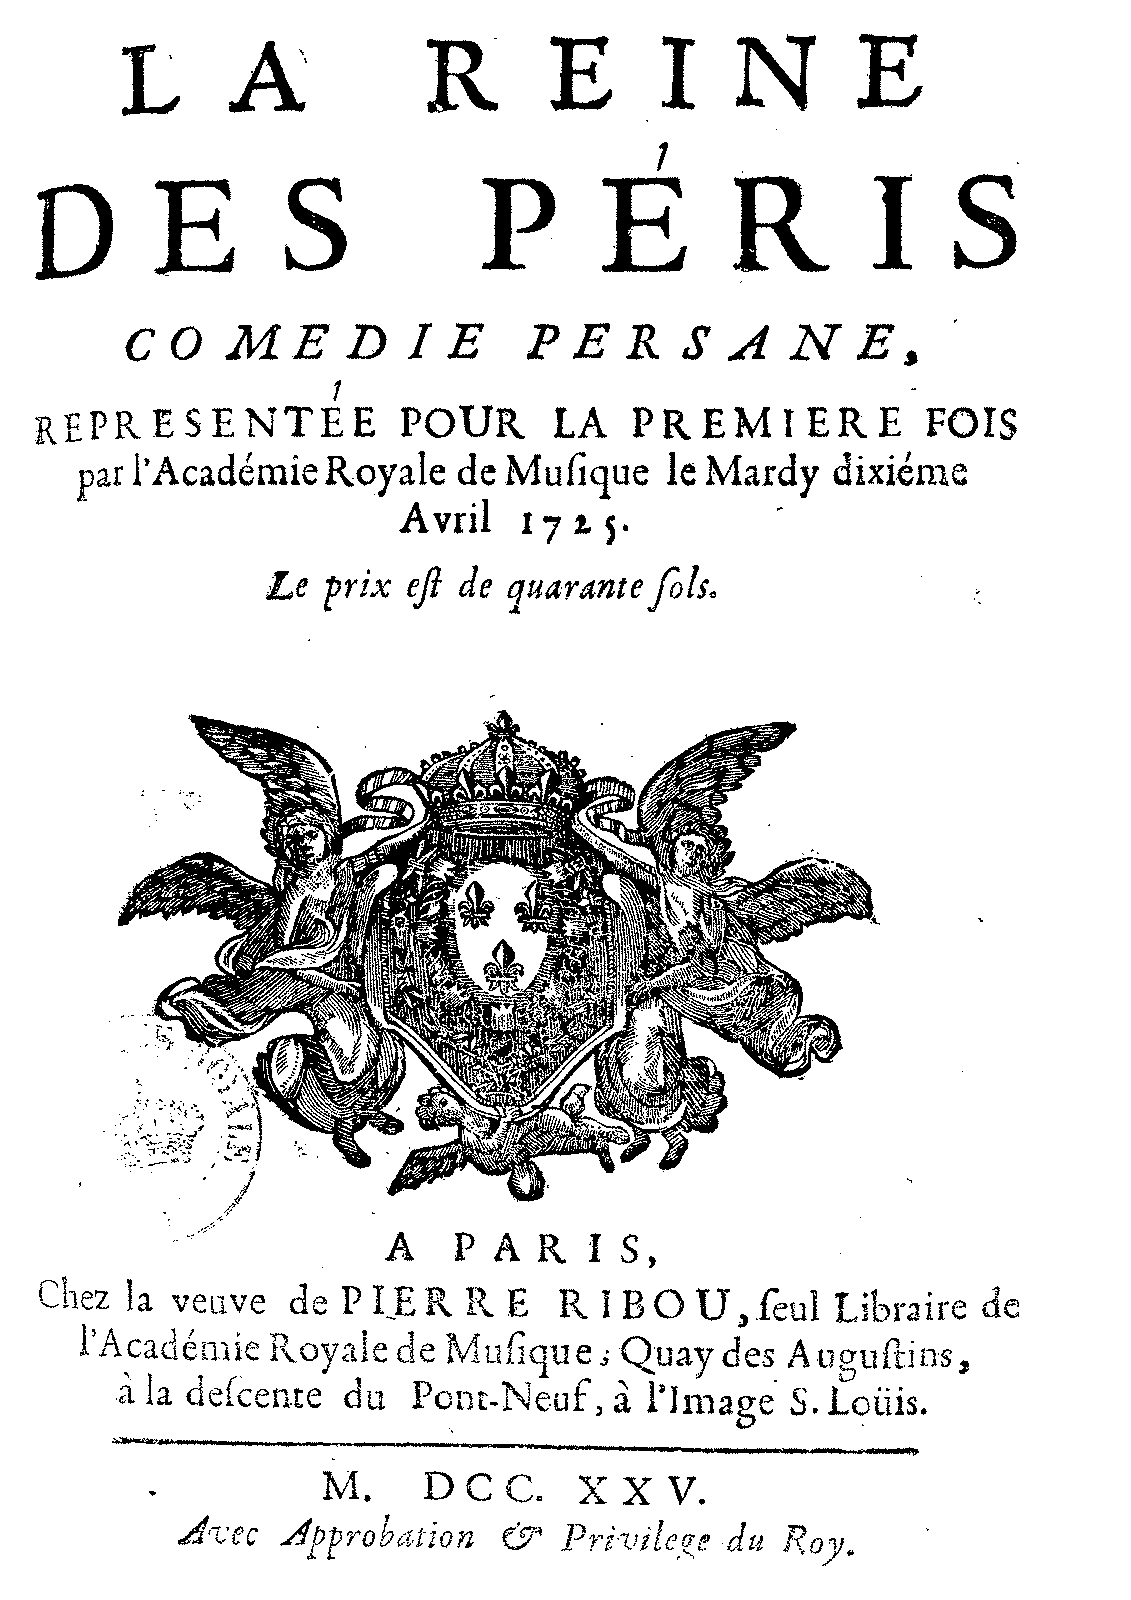 PMLP103425-Aubert Reine des Peris-Libretto Title Prologue.pdf